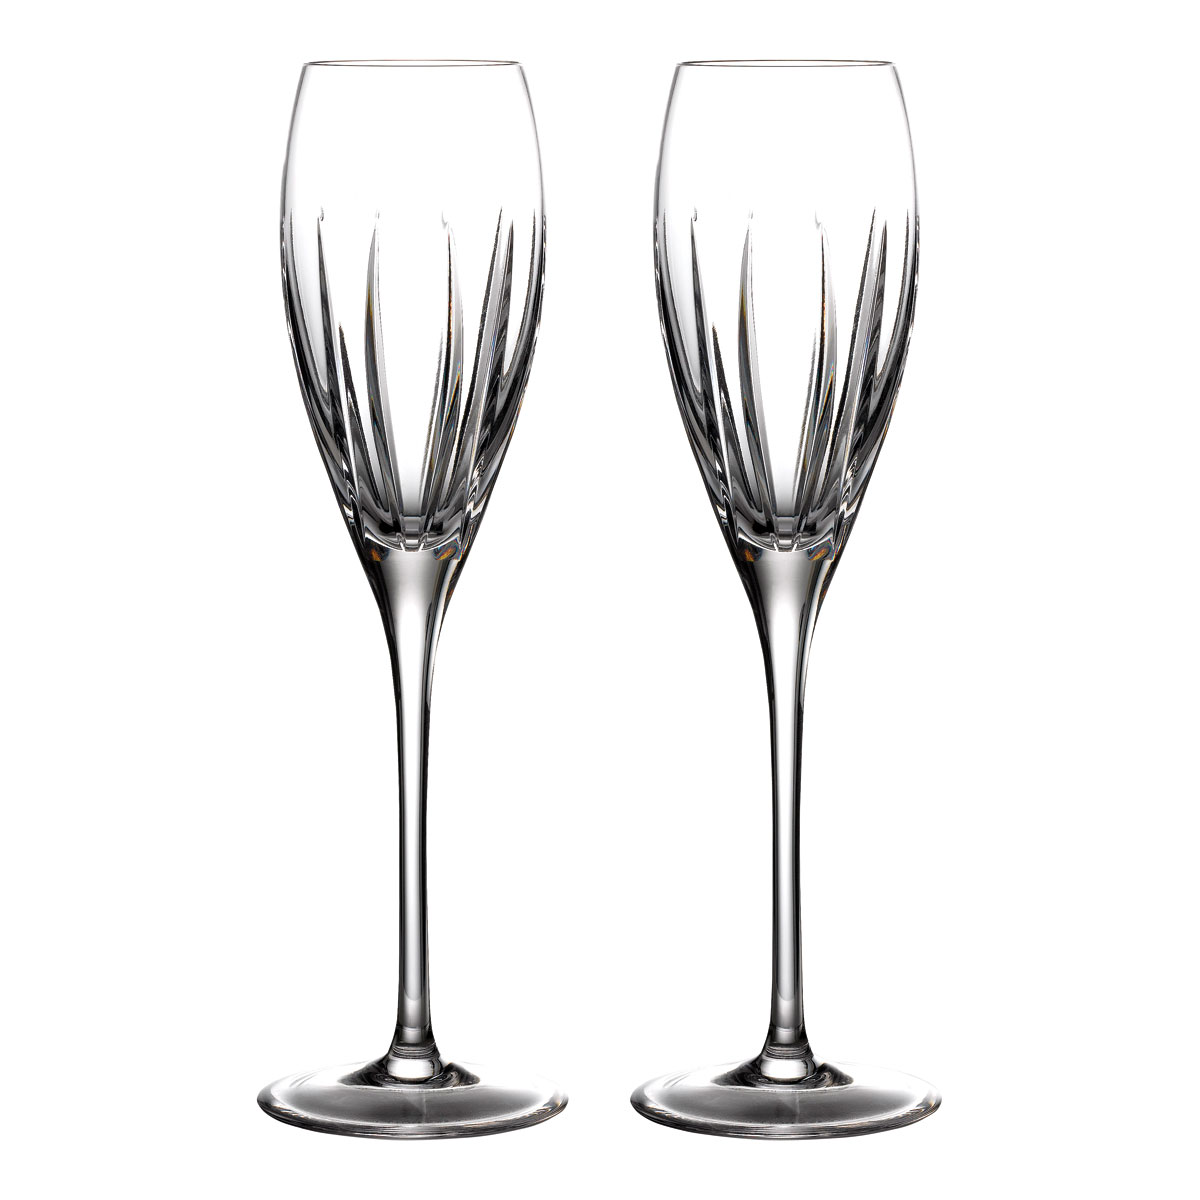 Waterford Crystal Ardan Tonn Champagne Flutes, Pair